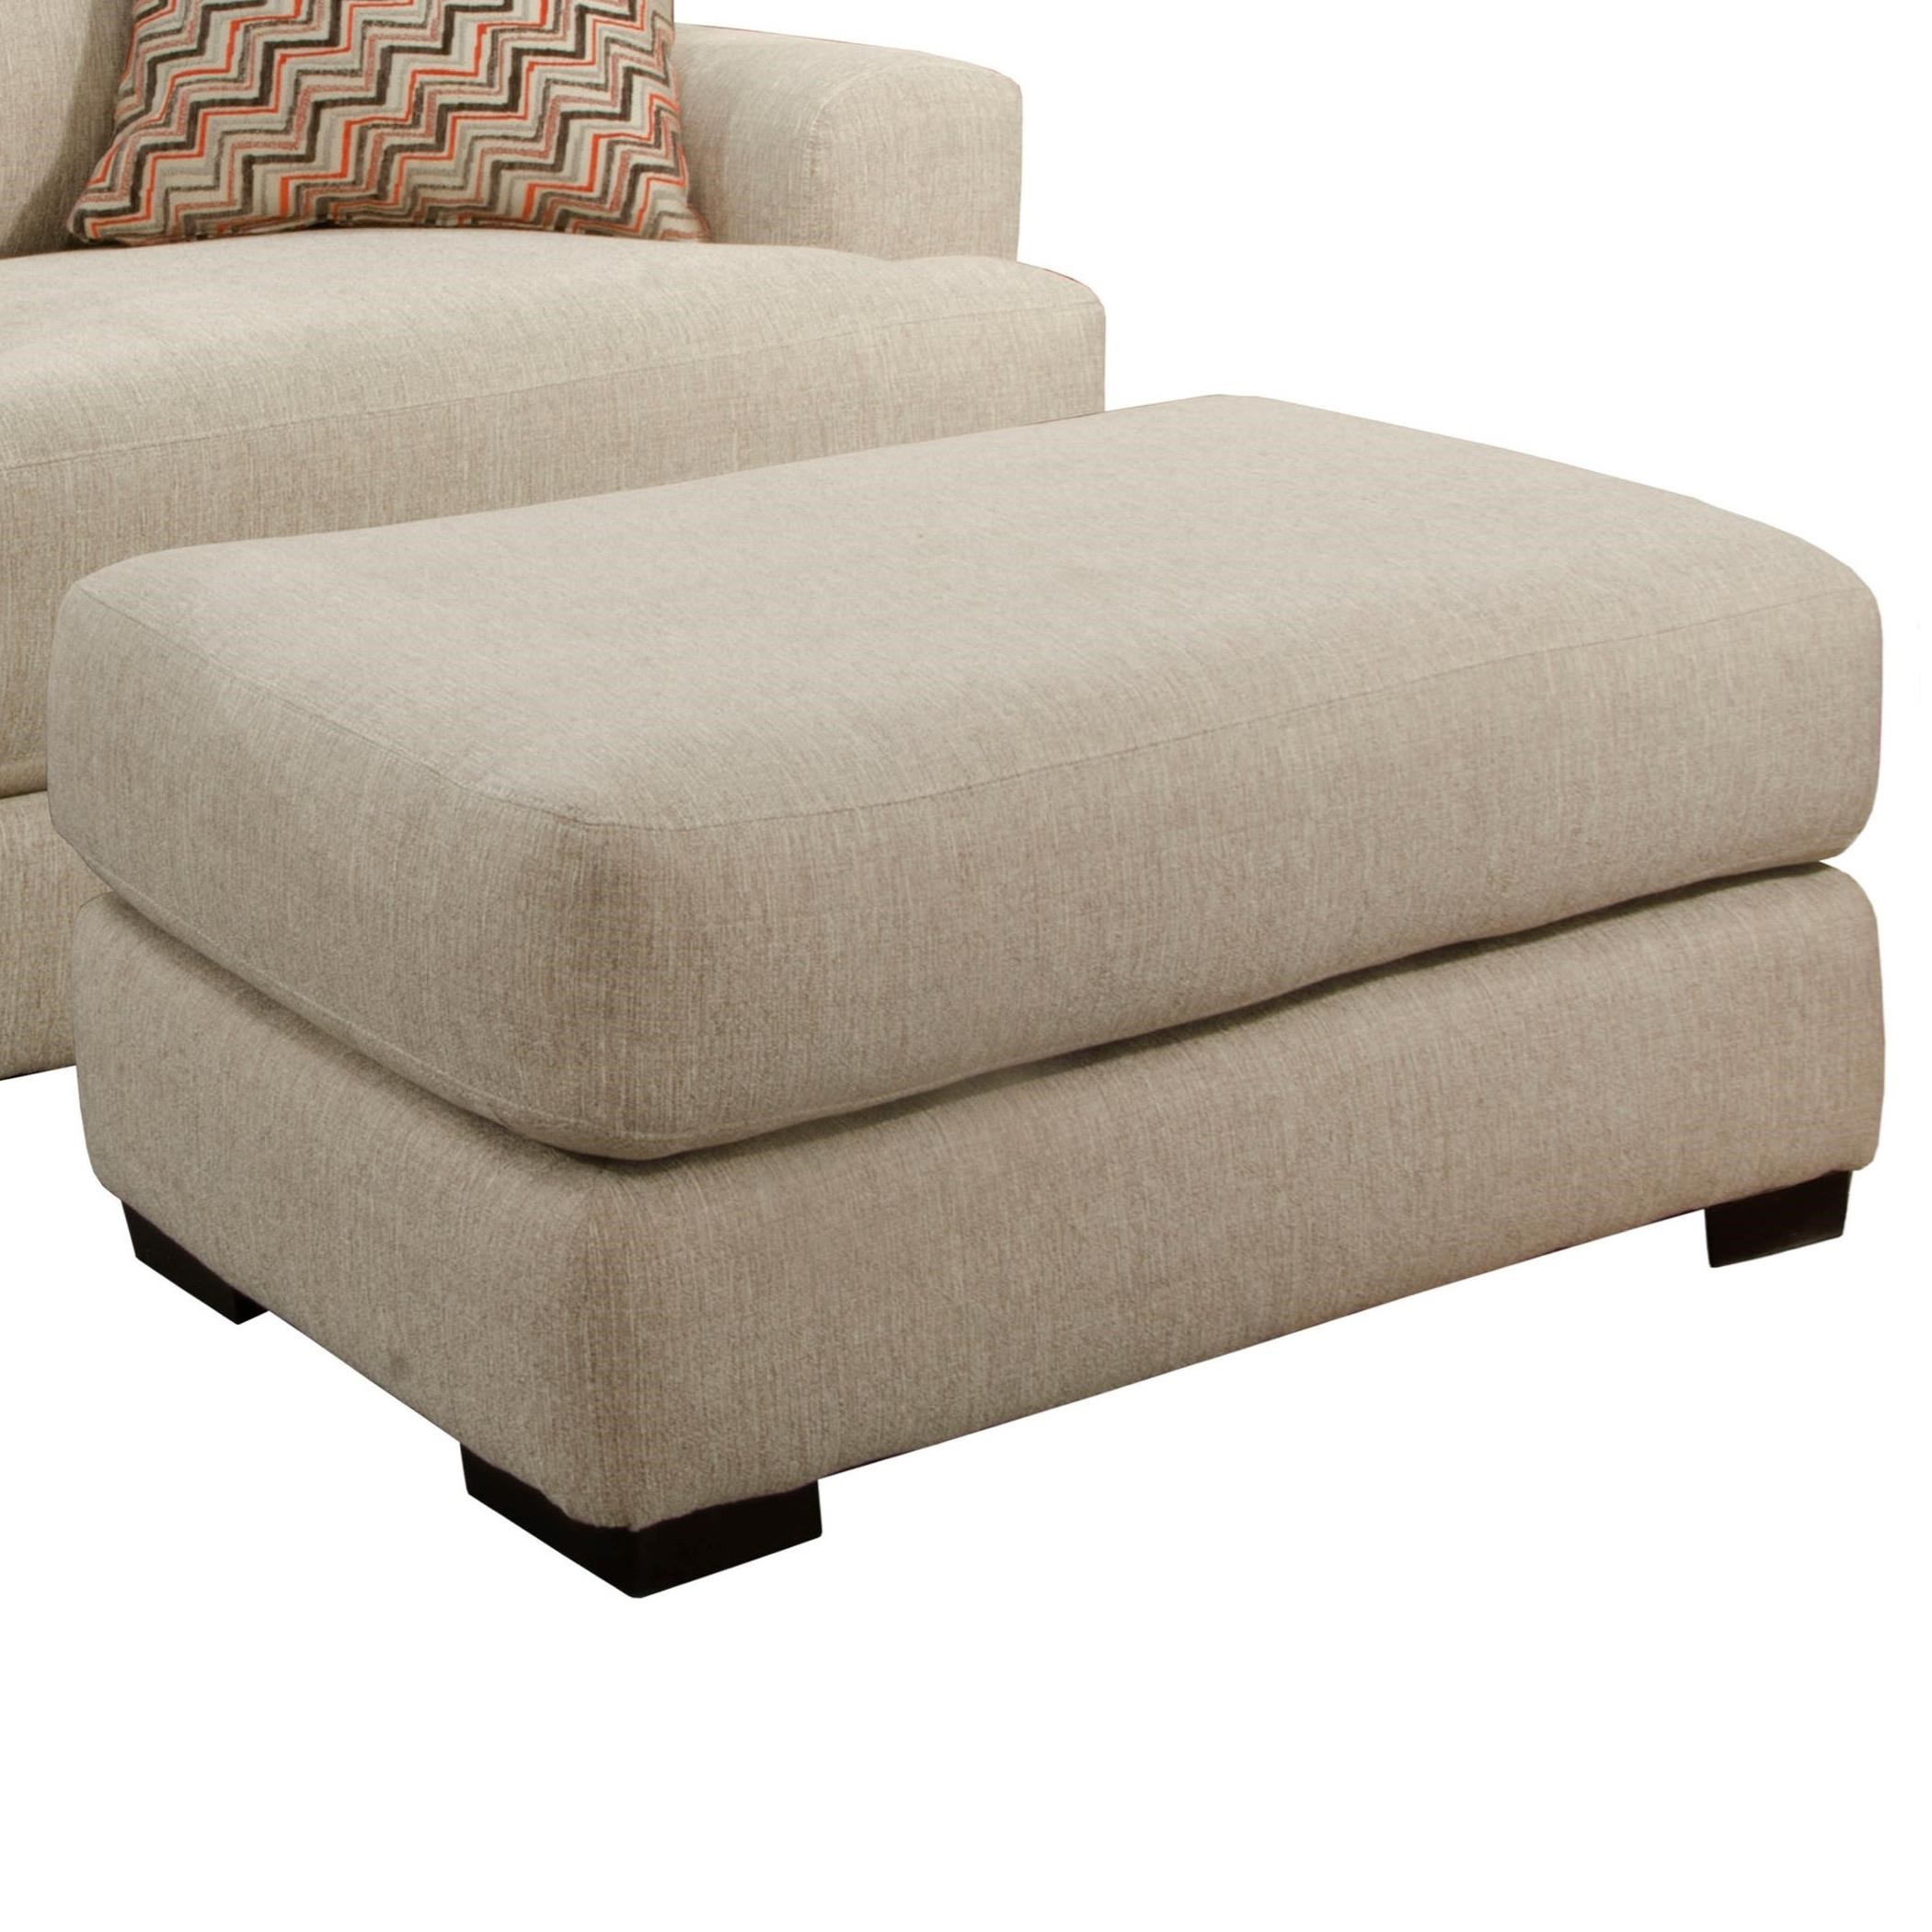 Ava Ottoman by Jackson Furniture at Northeast Factory Direct